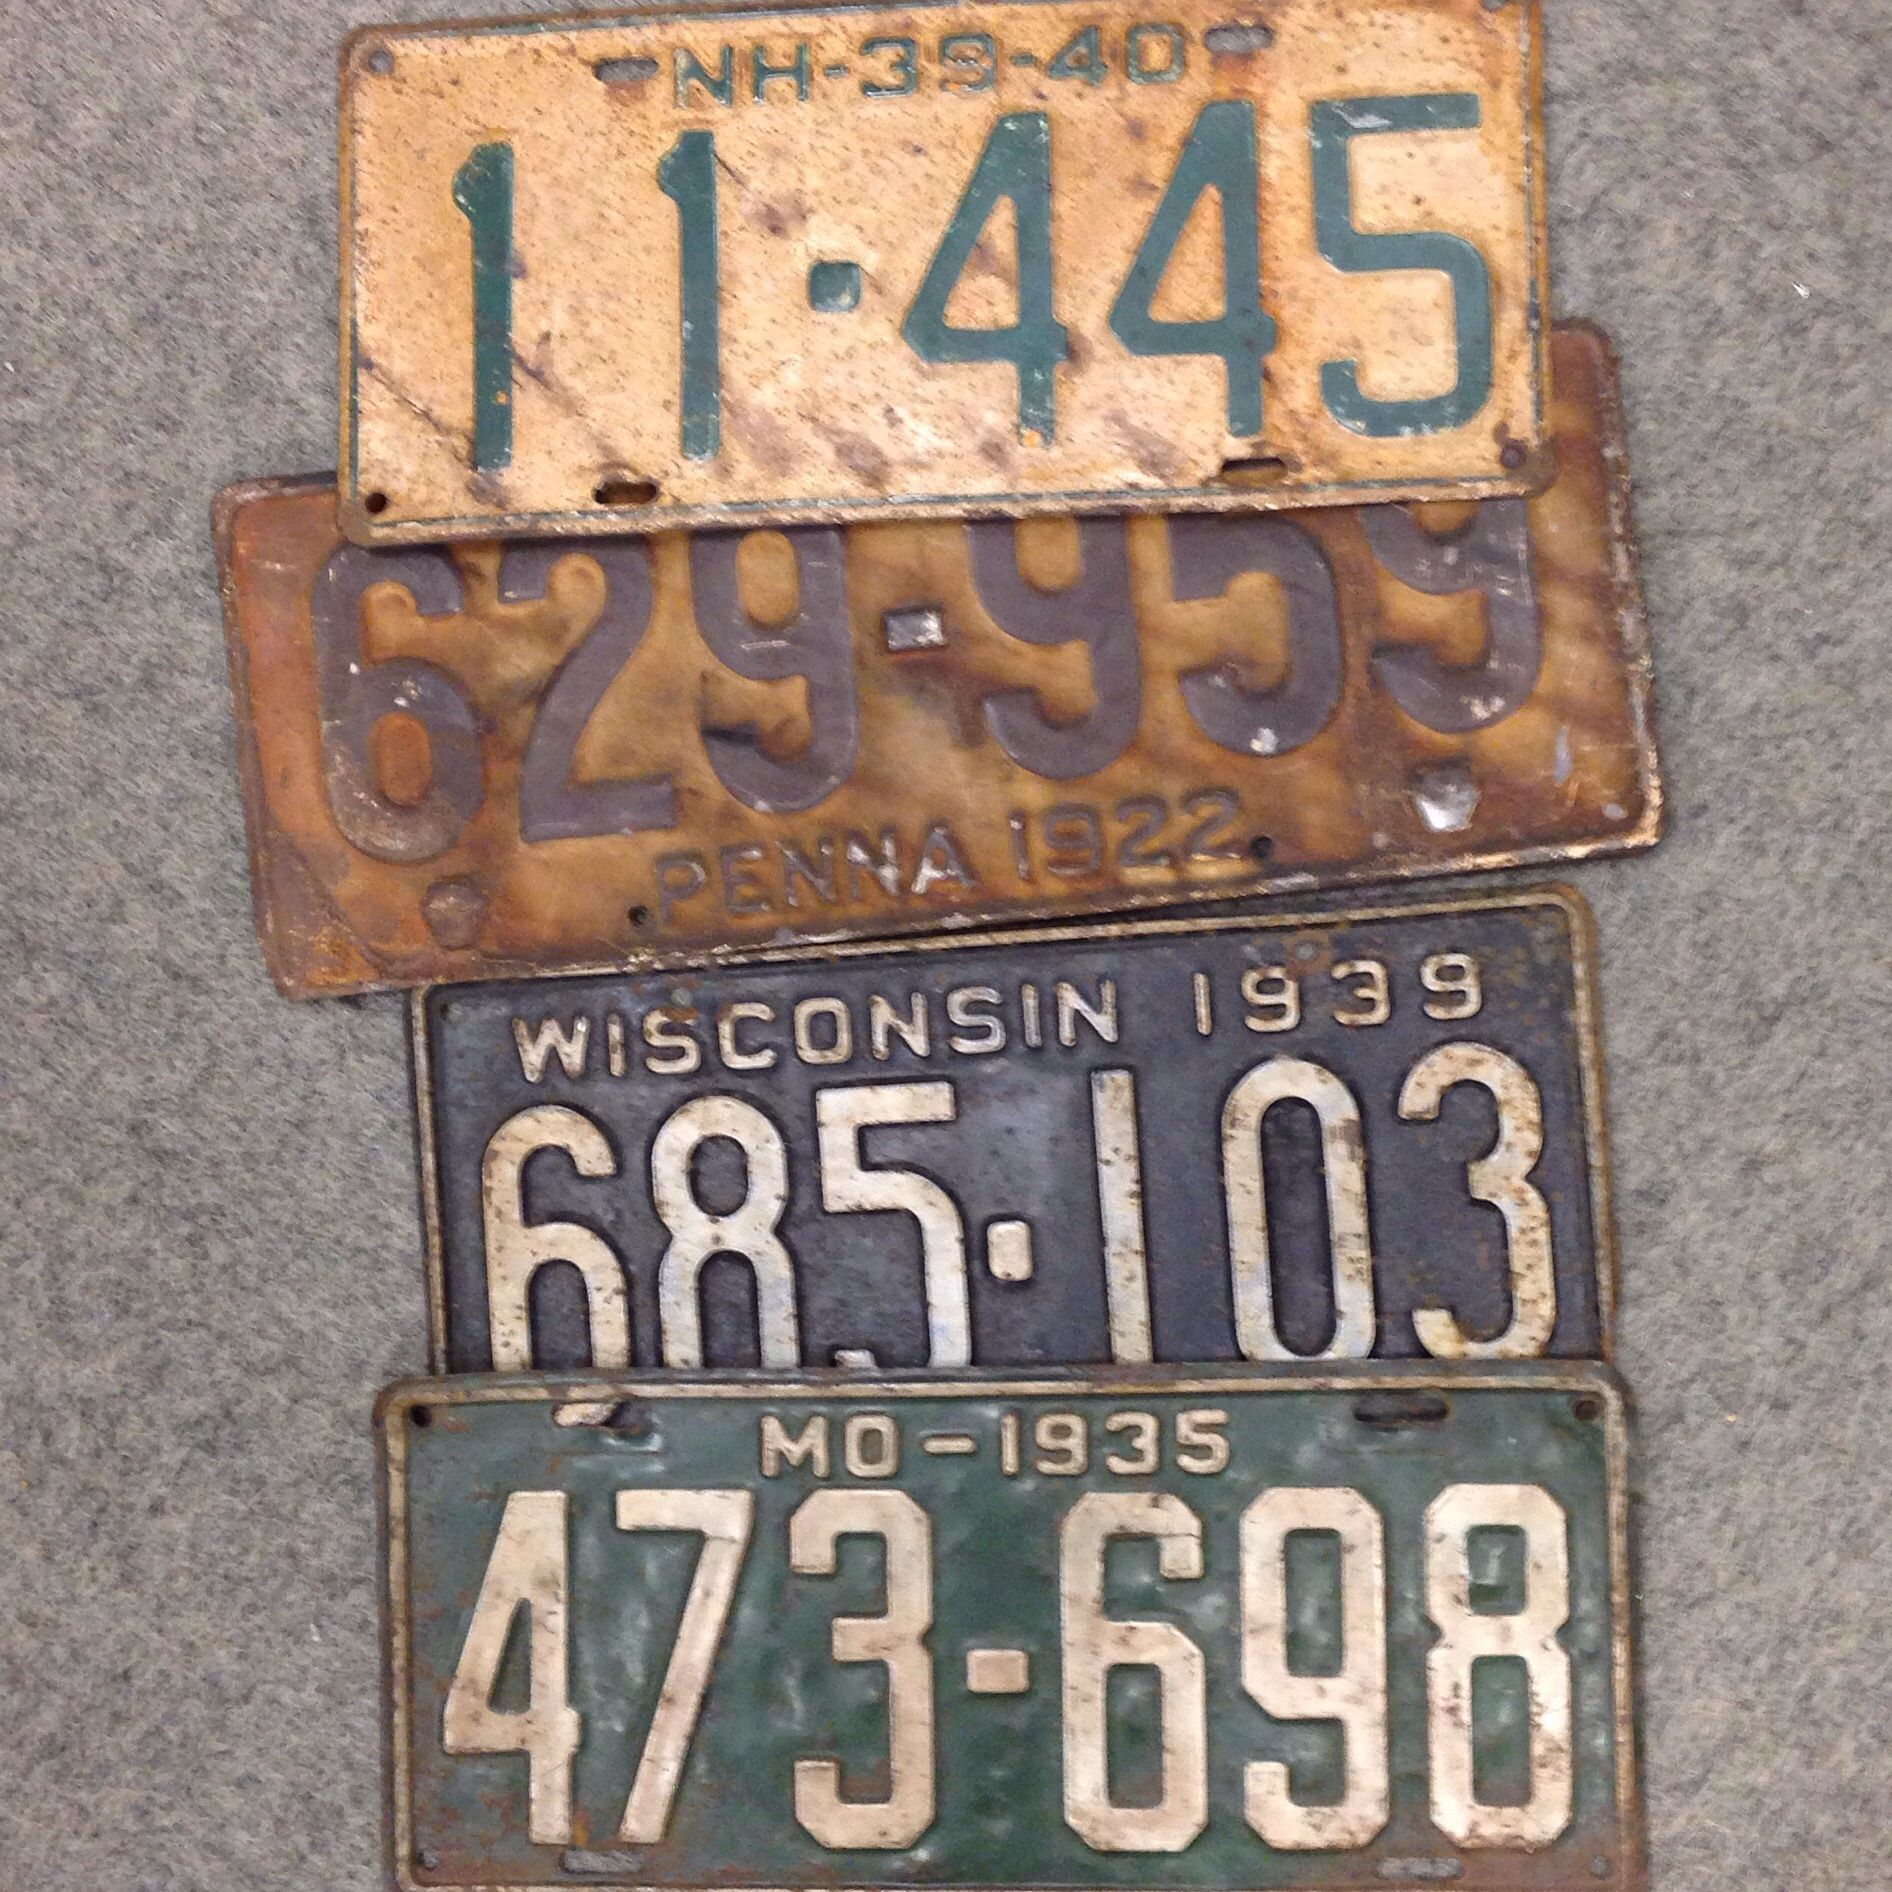 Found these Vintage LICENSE PLATES at a Flea Market .... Love this Rusty & Found these Vintage LICENSE PLATES at a Flea Market .... Love this ...